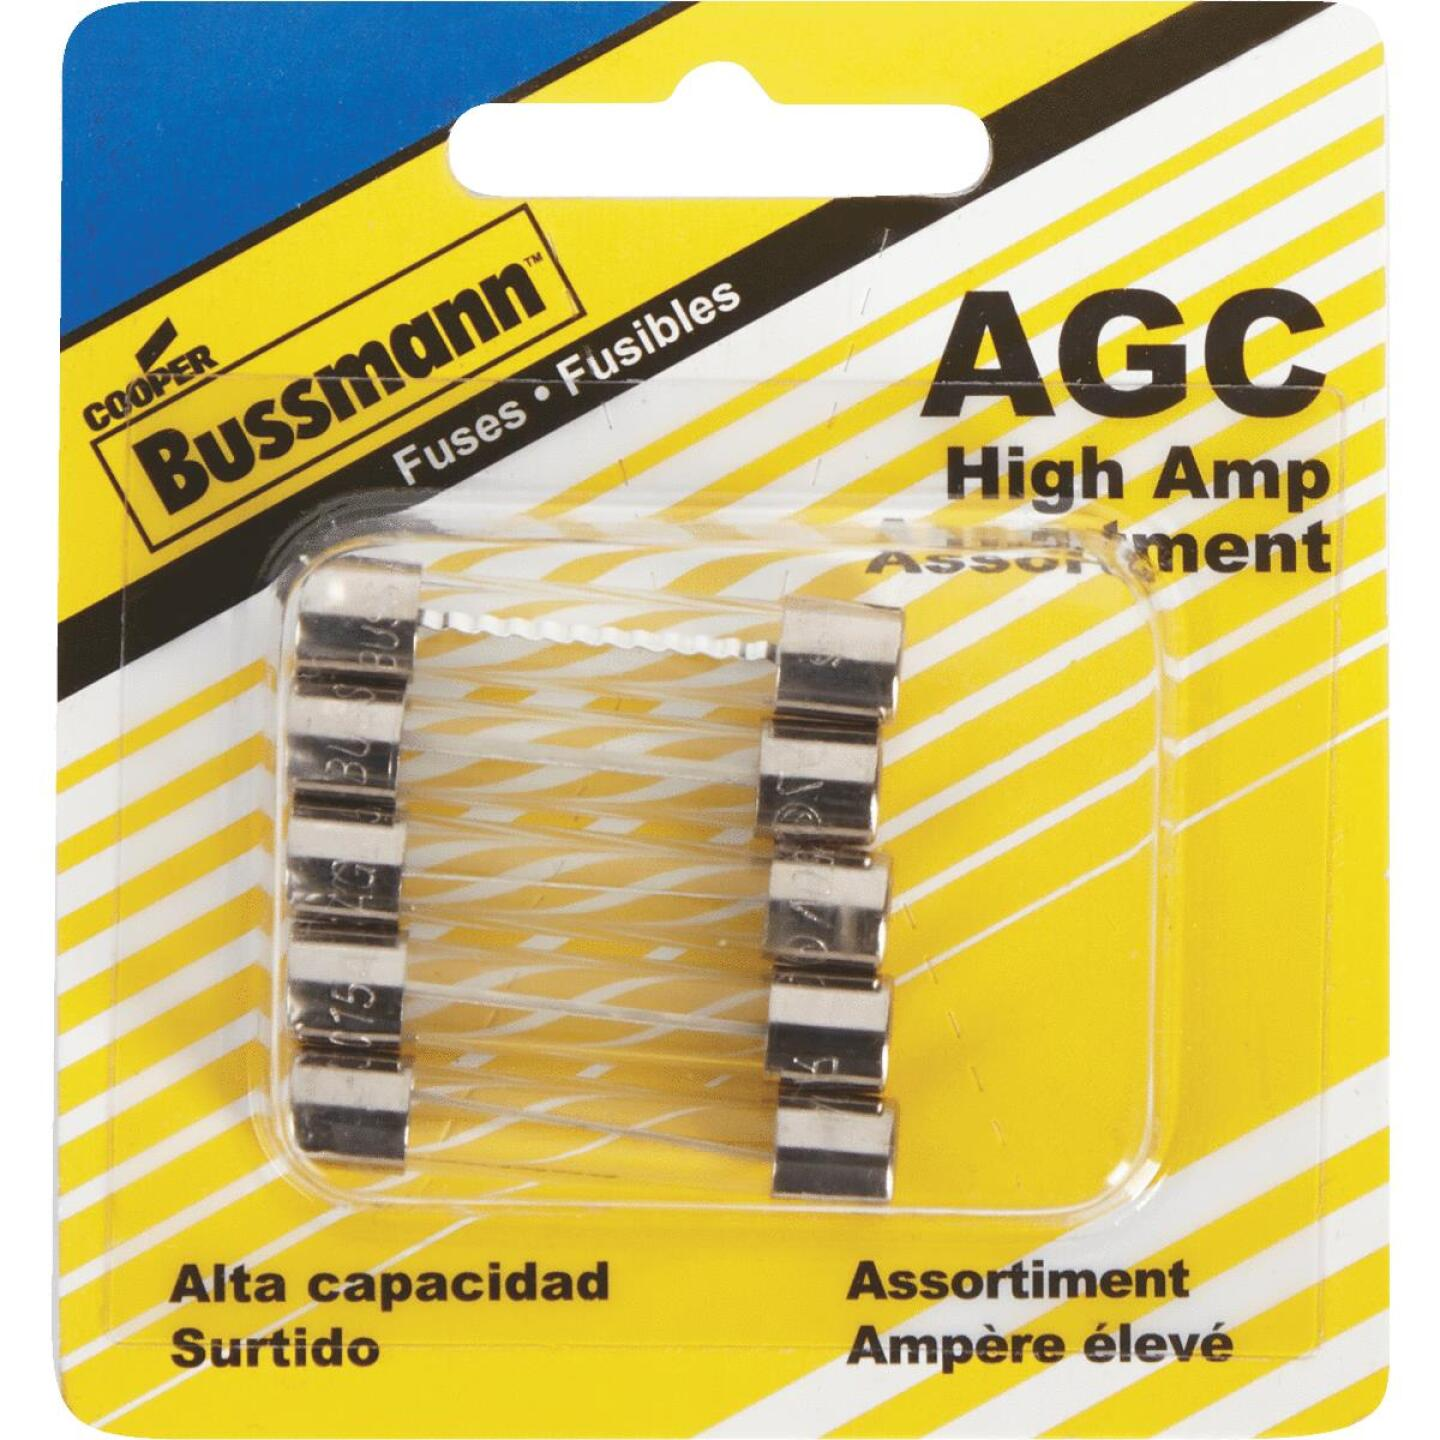 Bussmann AGC Glass Tube Fuse Assortment (5-Pack) Image 3